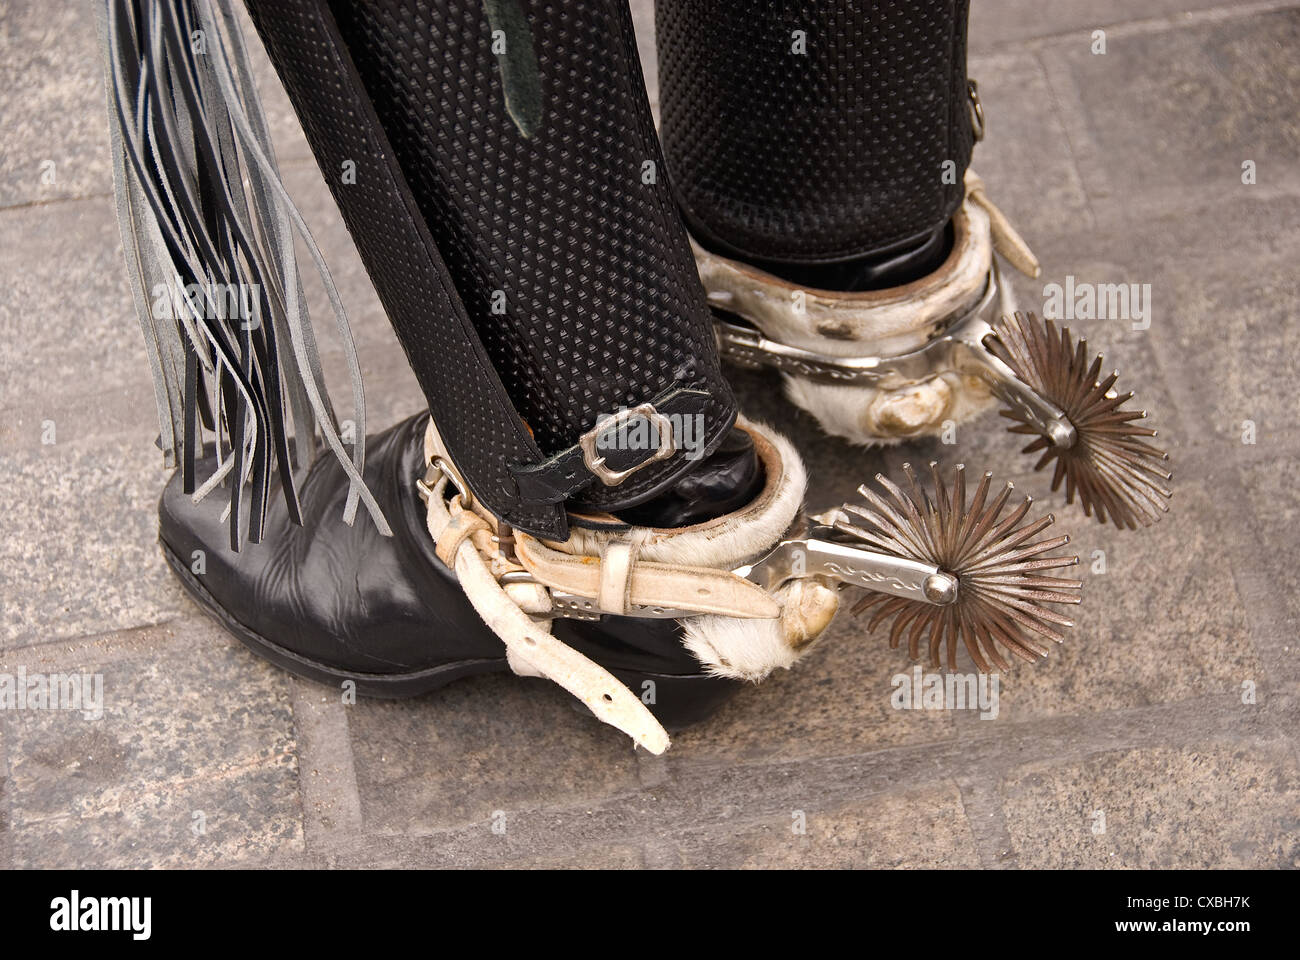 Elk198-2347 Chile, Iquique, traditional dancer, boots with spurs